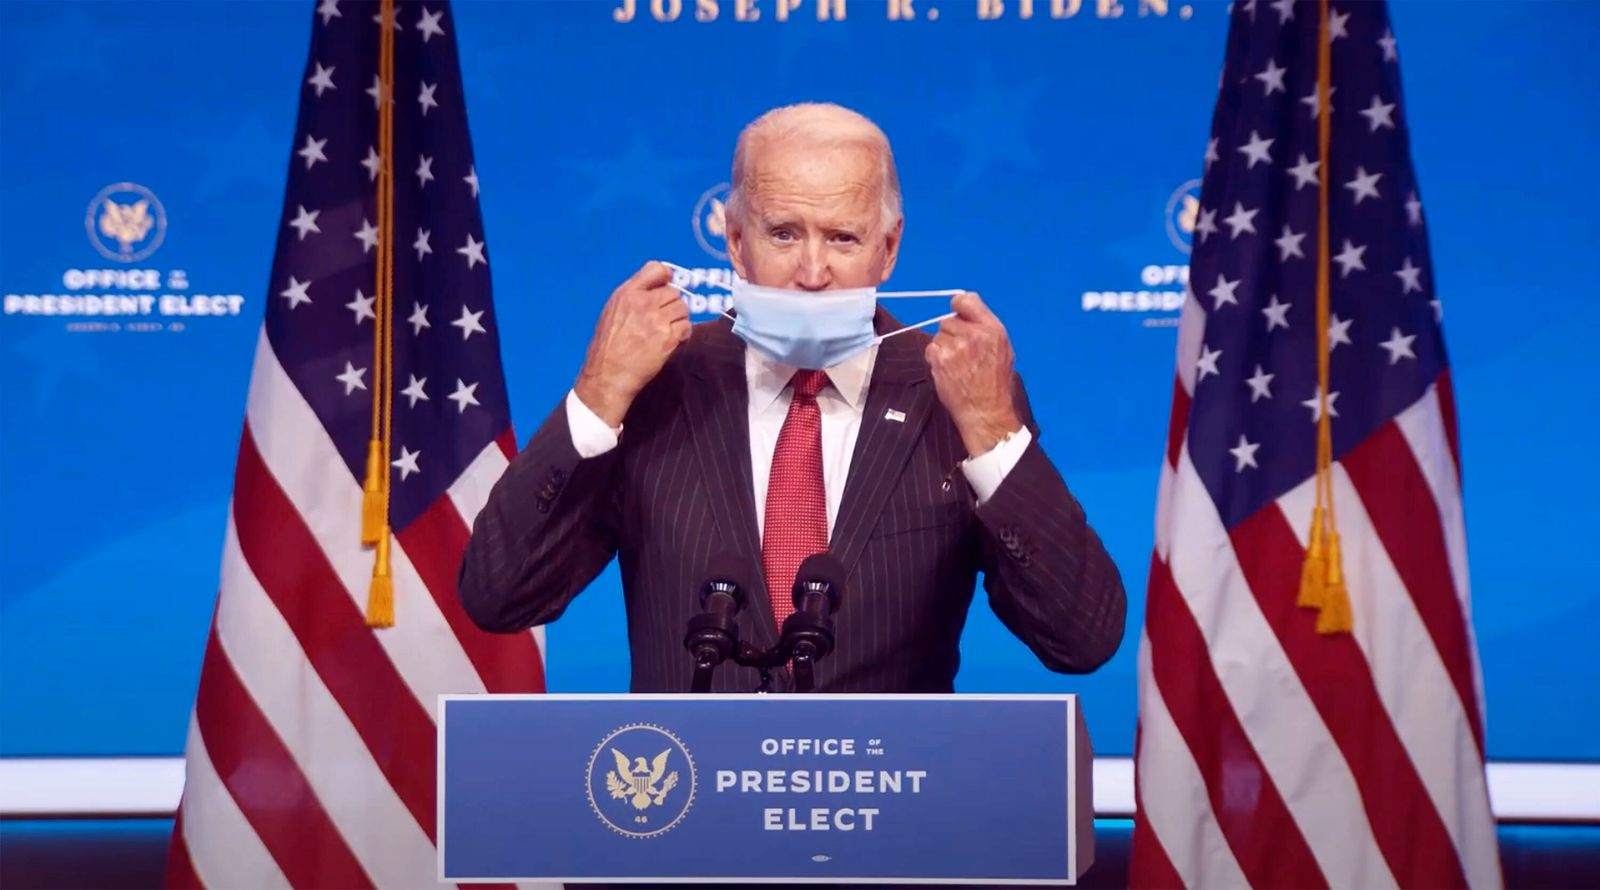 November 19, 2020, Wilmington, Delaware, USA: United States President-elect Joe Biden removes his mask prior to making